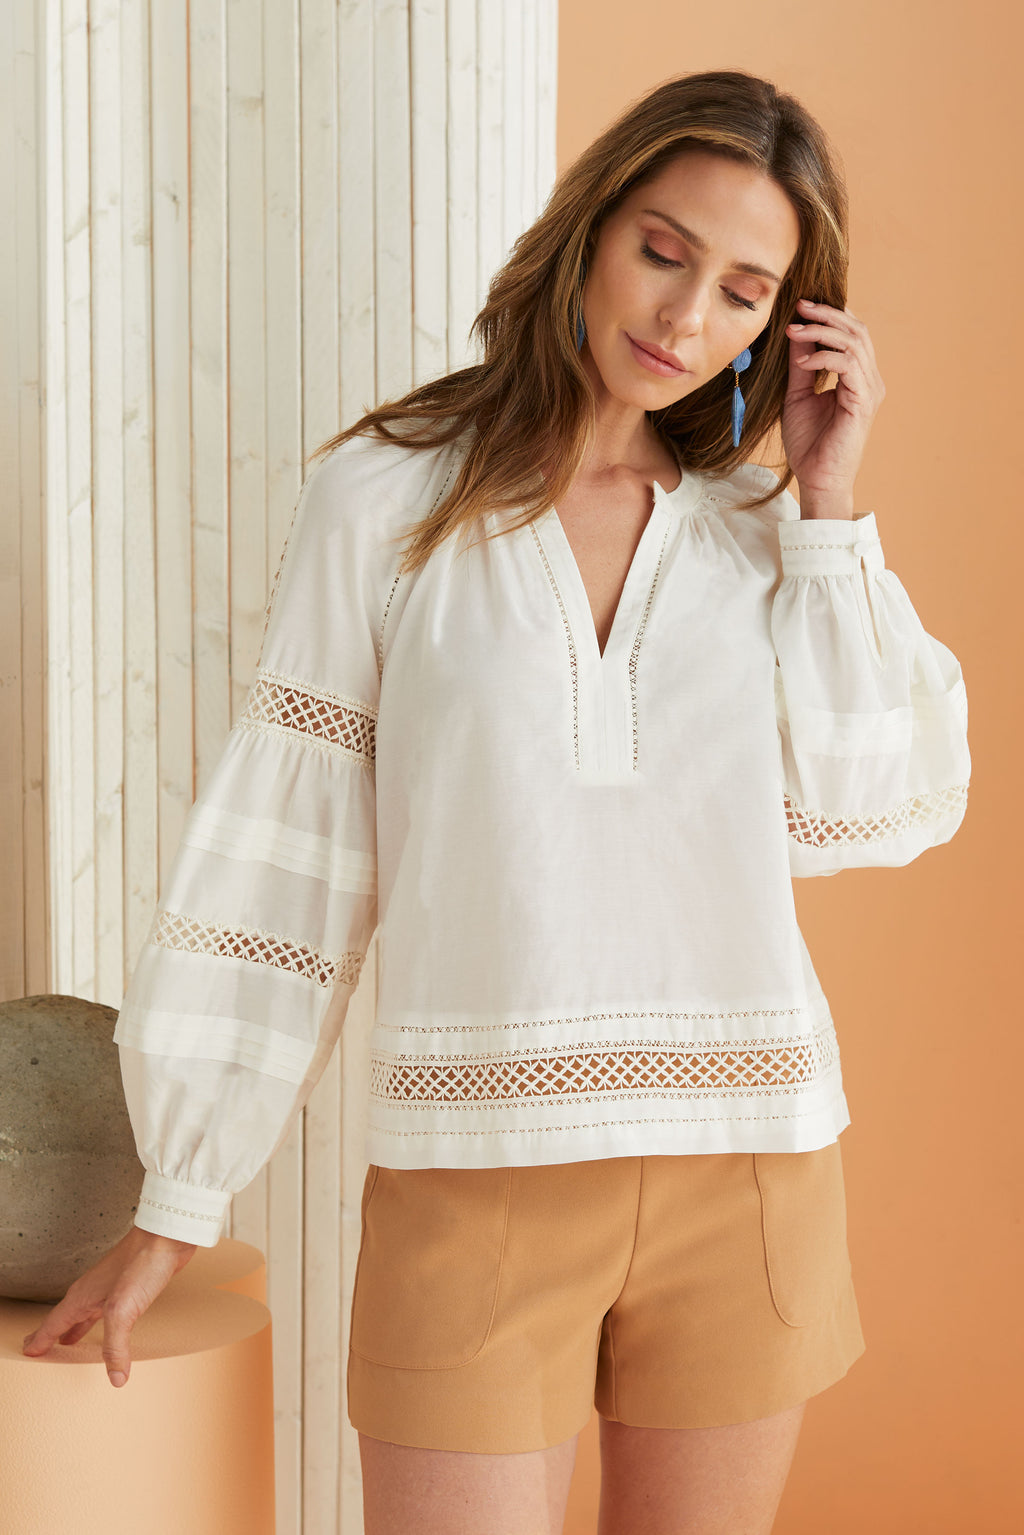 White v-neck long sleeve blouse with lattice details